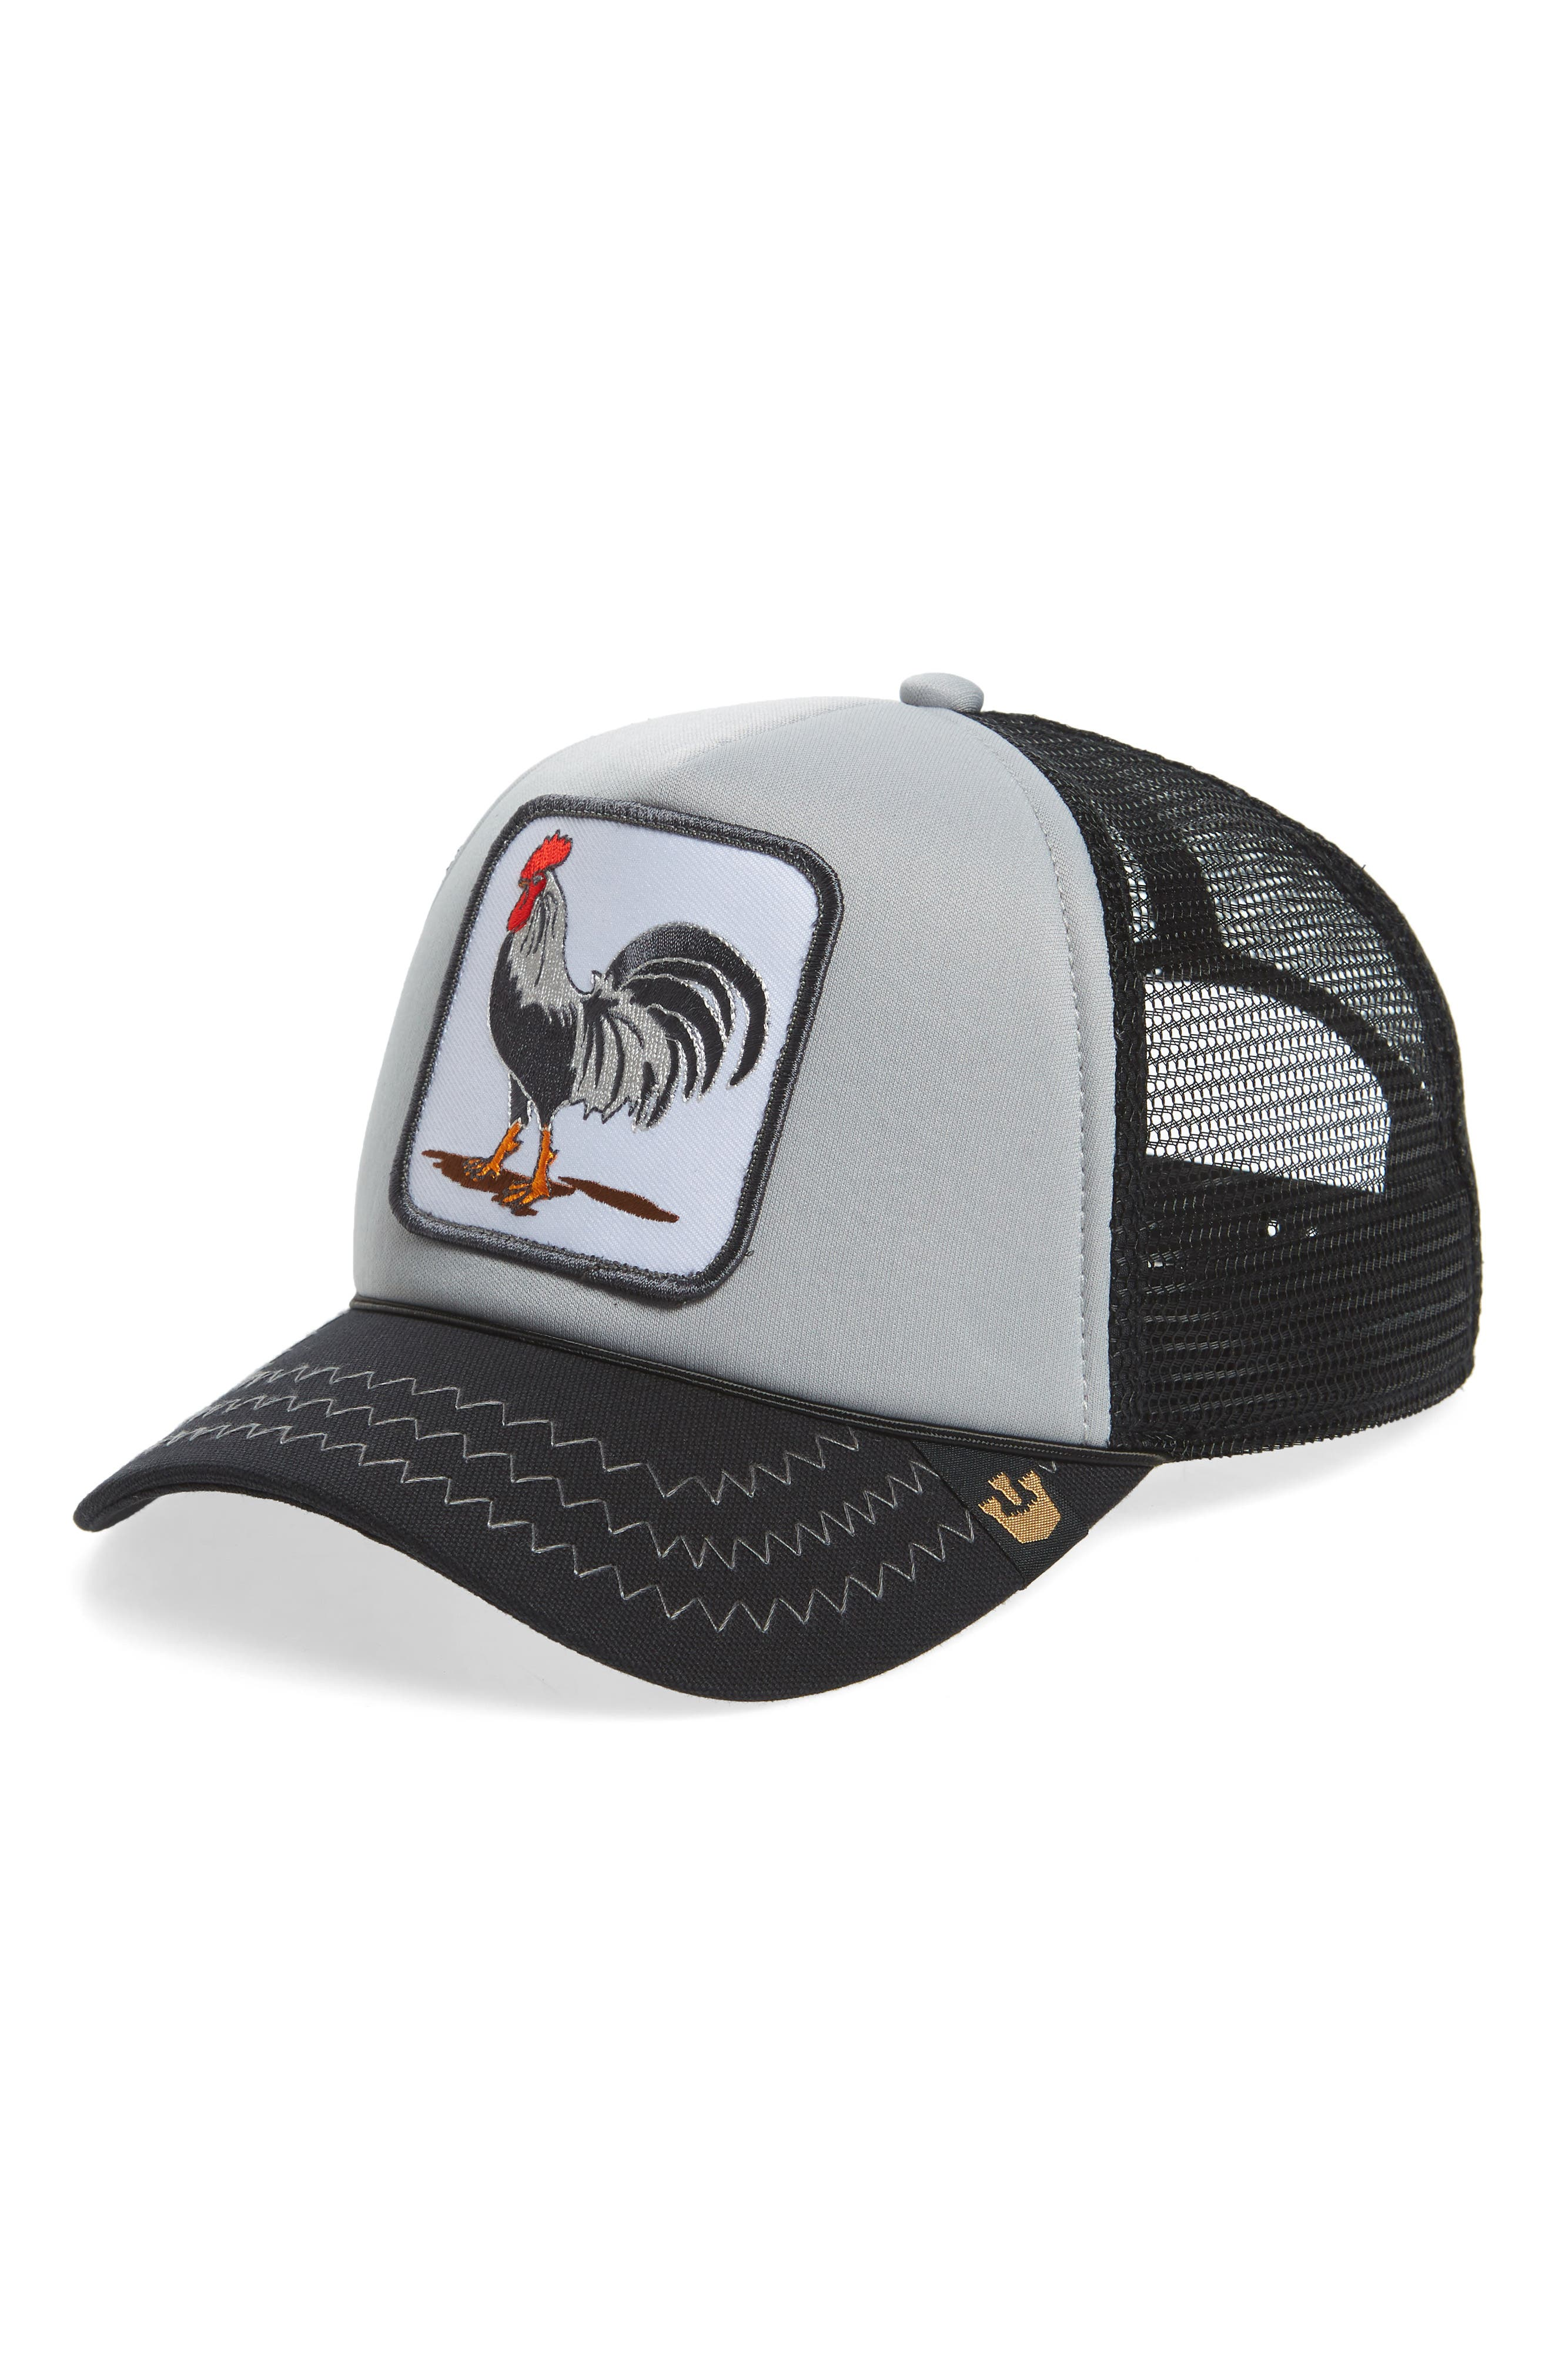 Goorin Brother Animal Farm Trucker Hat